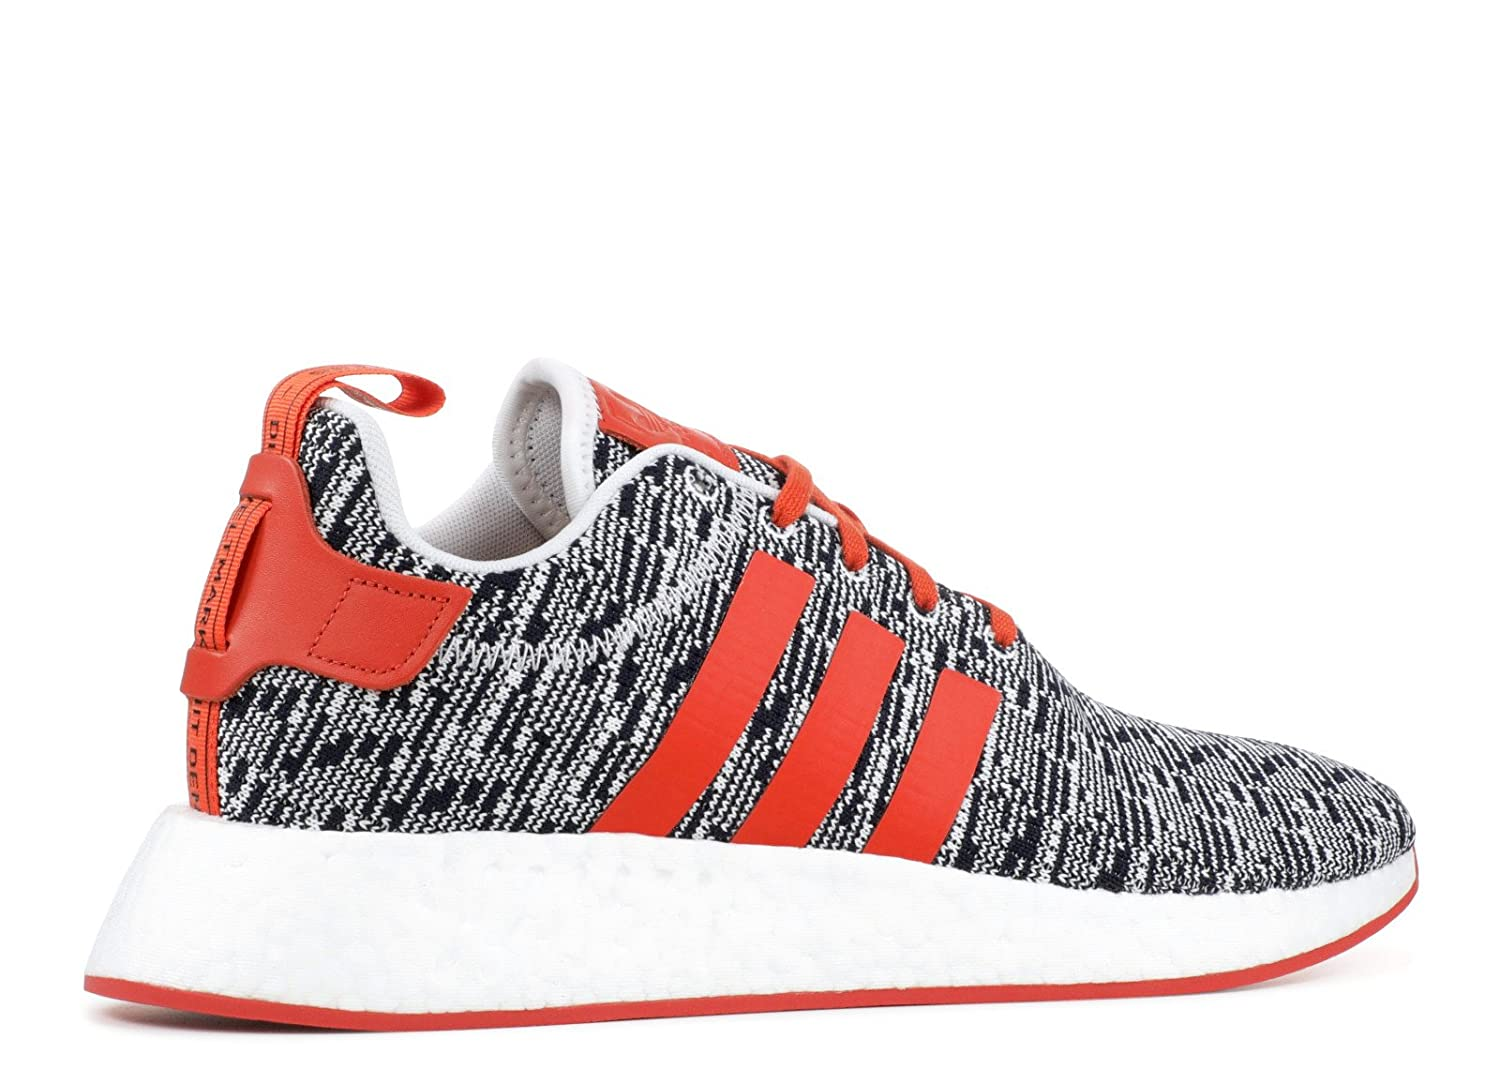 newest a0a8c 789da Amazon.com  adidas Originals Mens NMDr2 Running Shoe  Fashion Sneakers